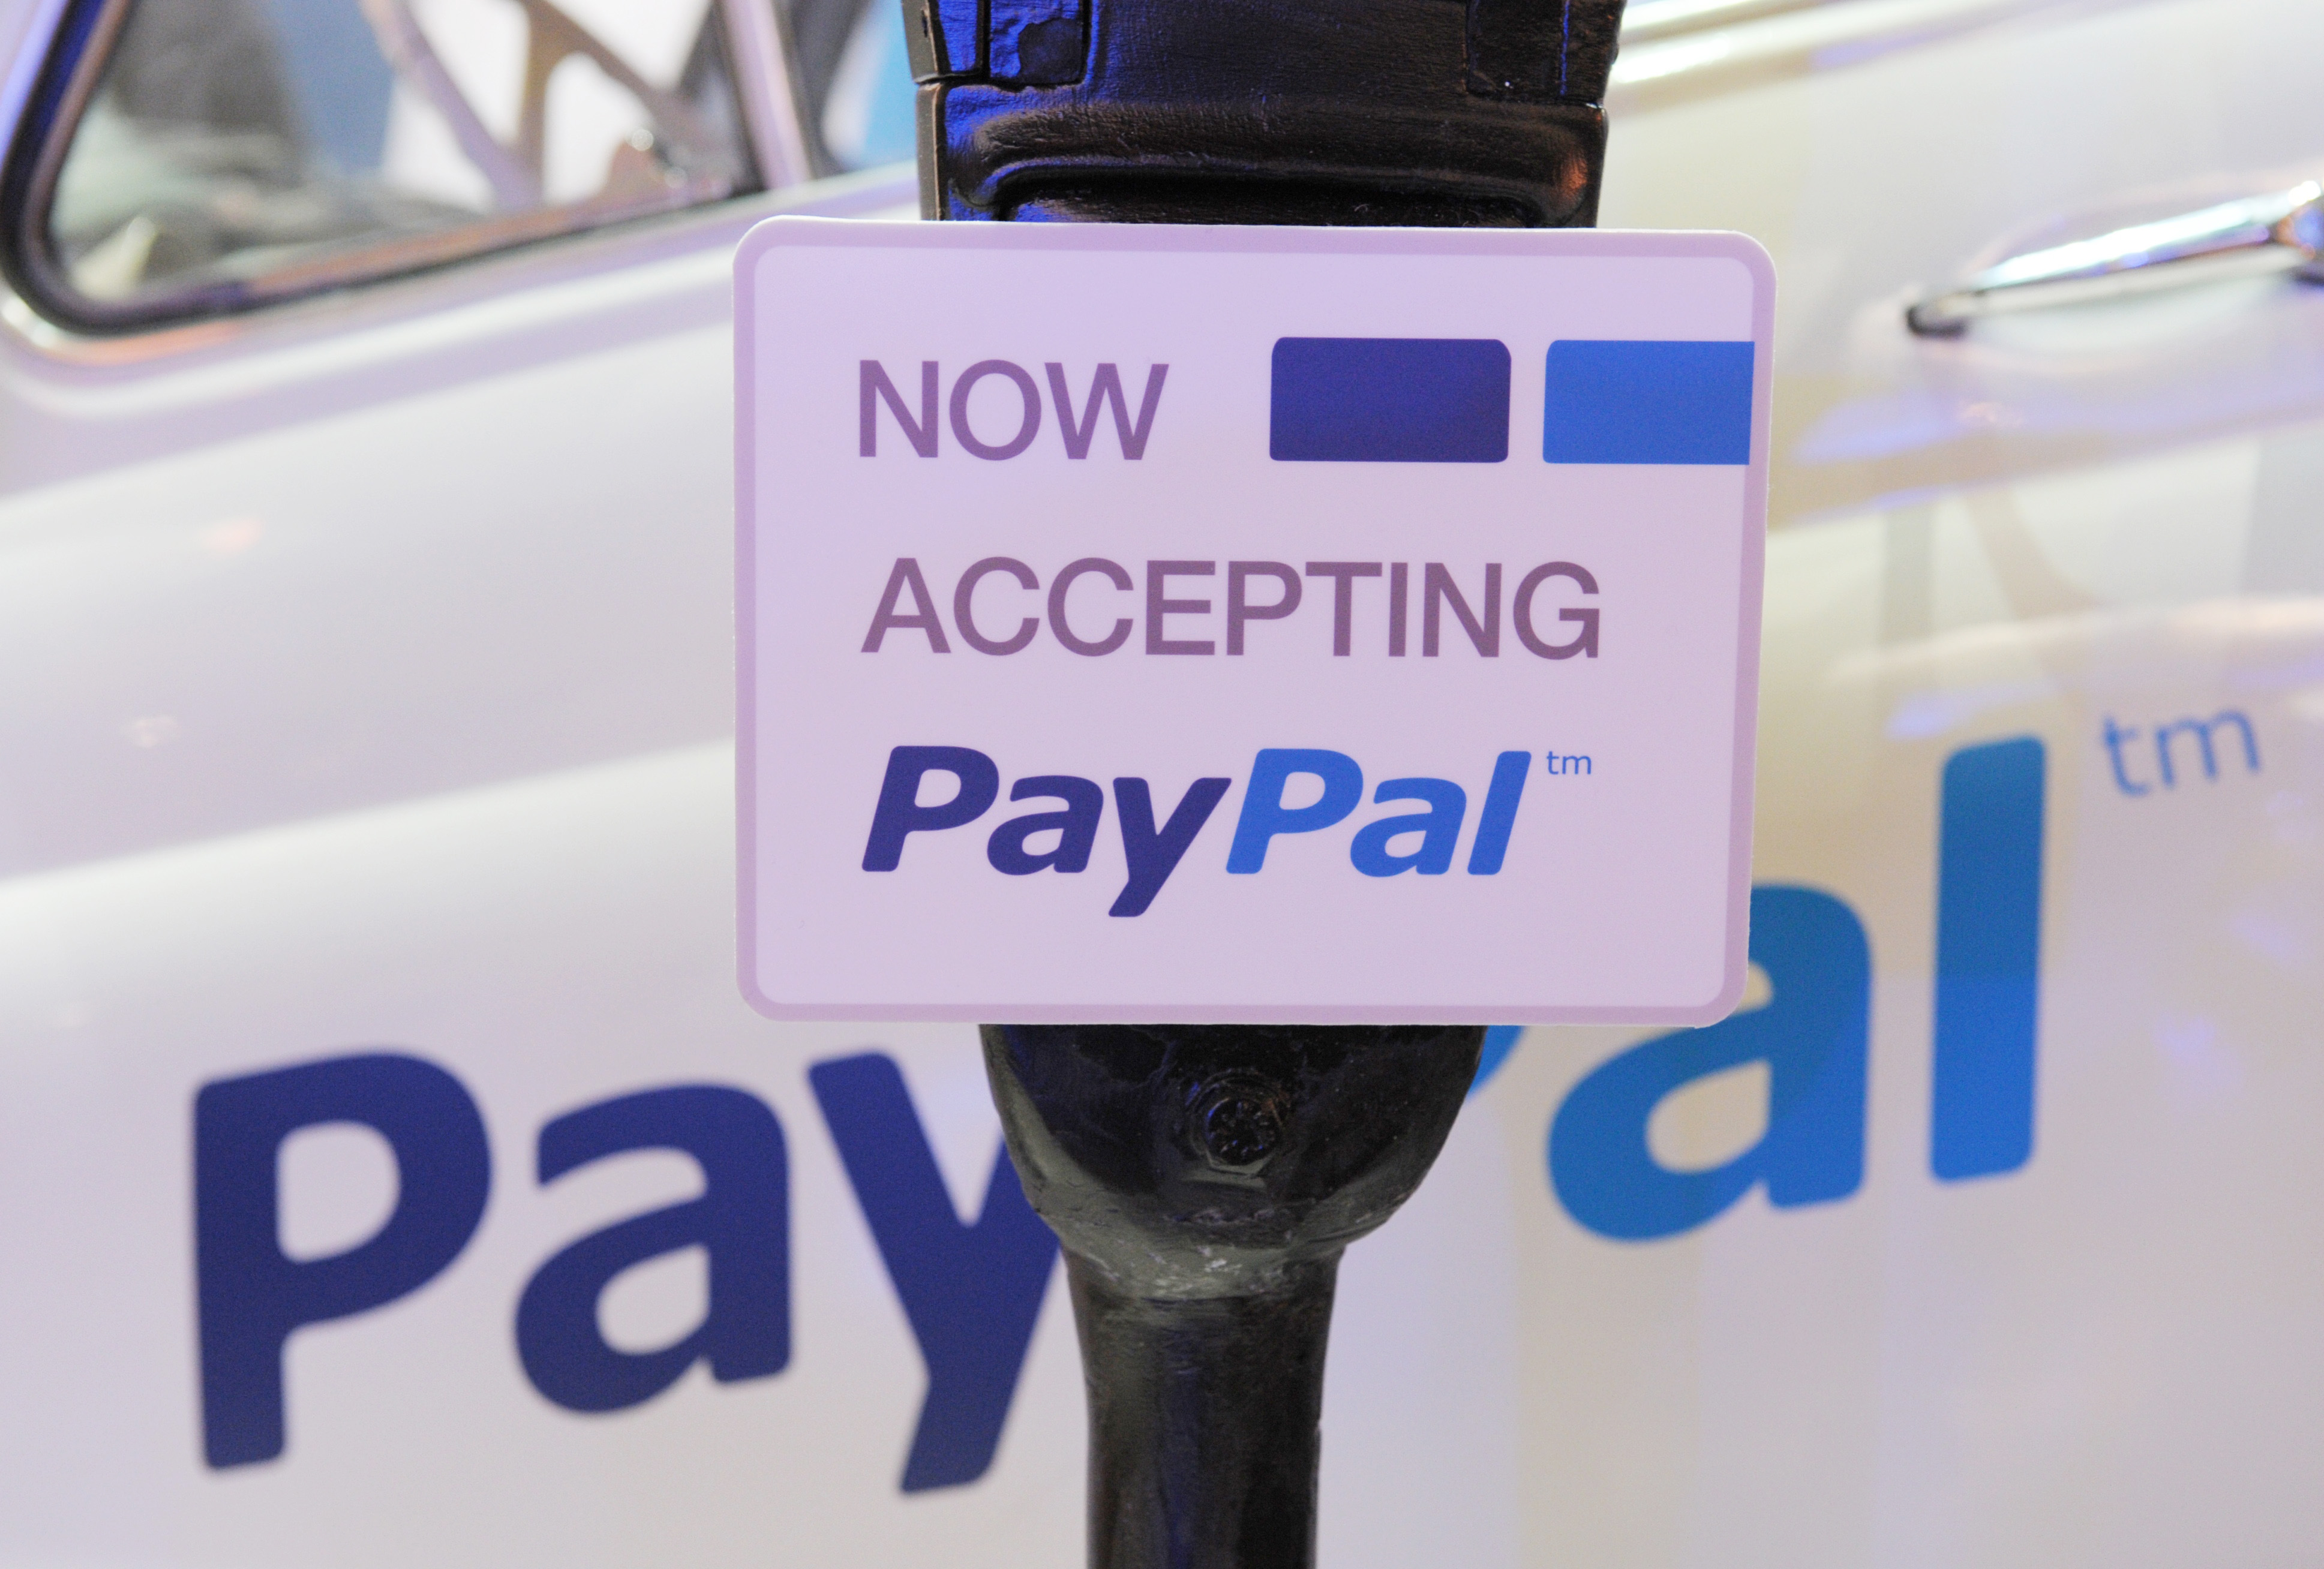 PayPal merges Braintree's developer relations team with its own in hopes of improving its image